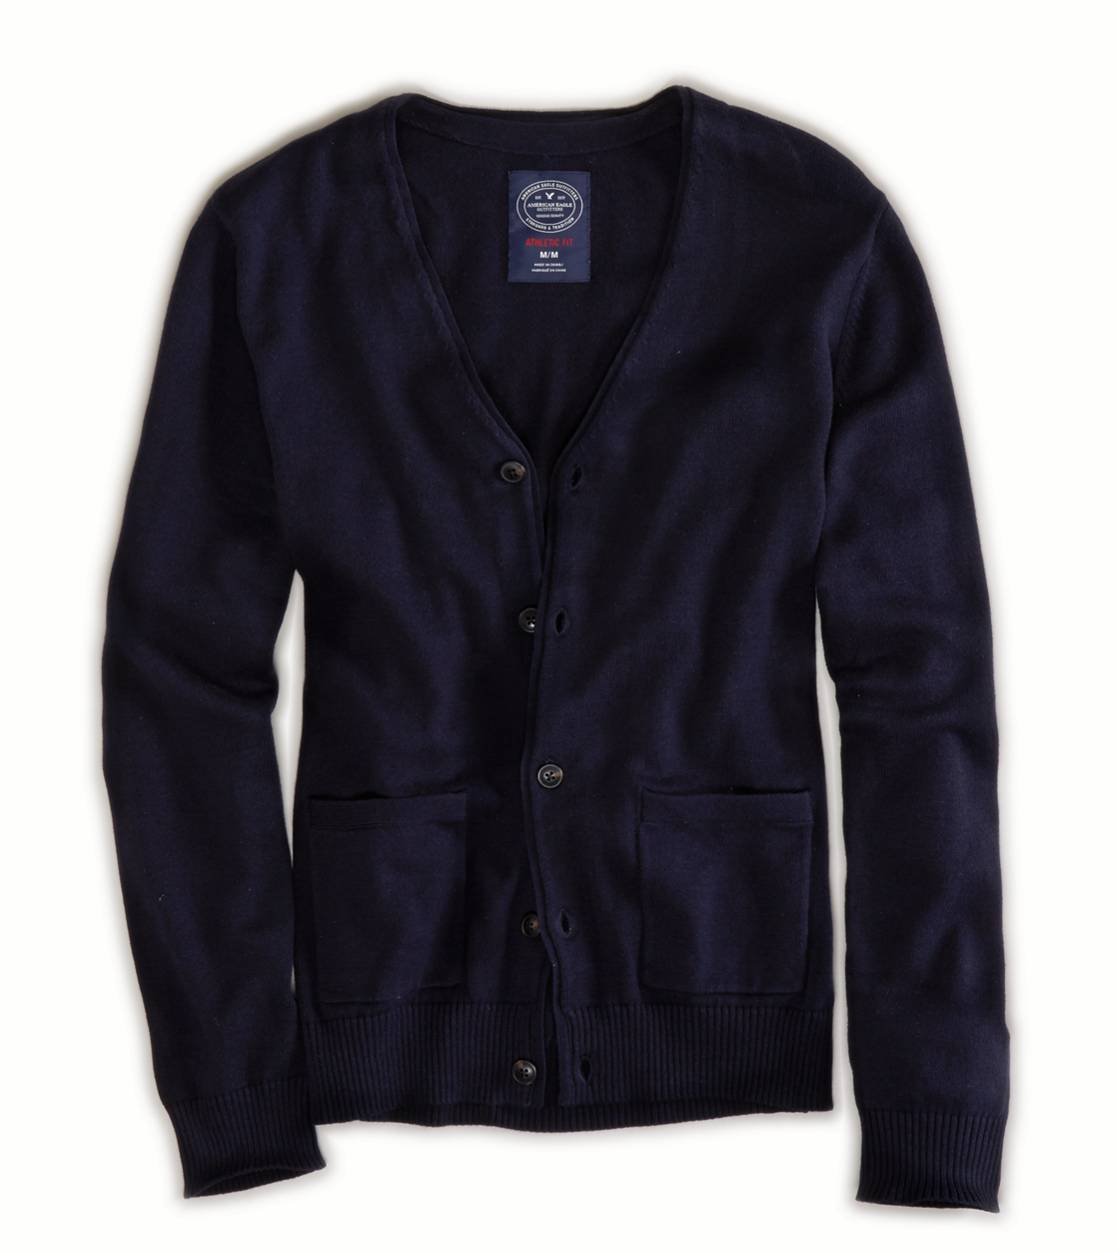 Navy AE Original Cardigan